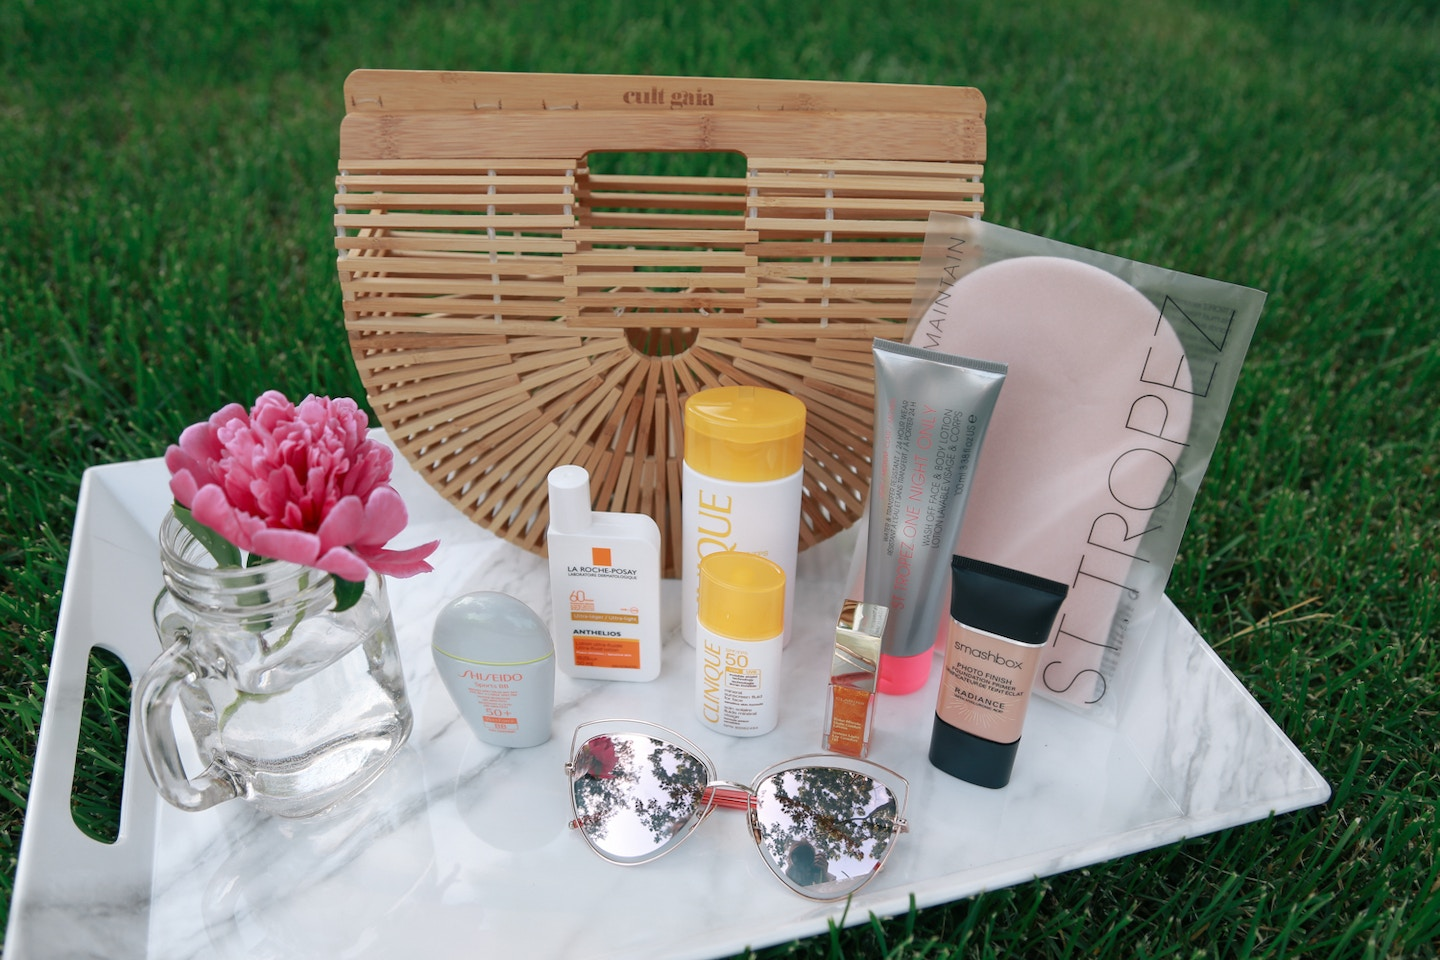 Summer Skincare Must-Haves: from sunscreen to self-tanner